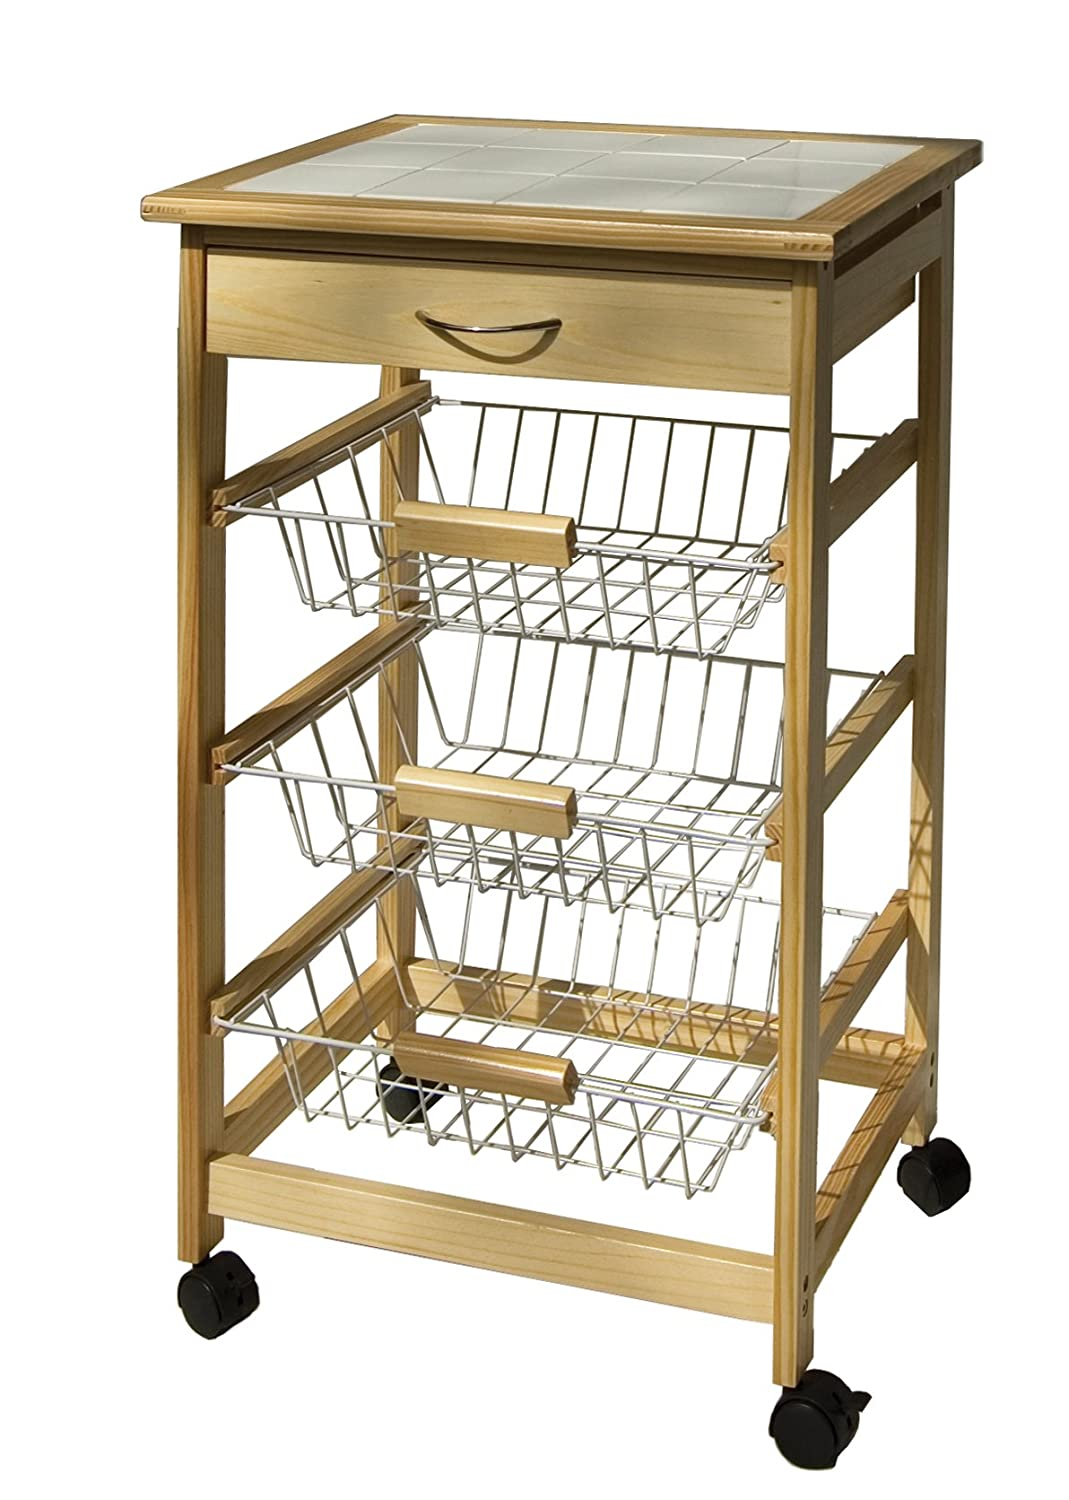 Kitchen Furniture Online India Buy Organize It All Providence Kitchen Cart With Baskets 34123w